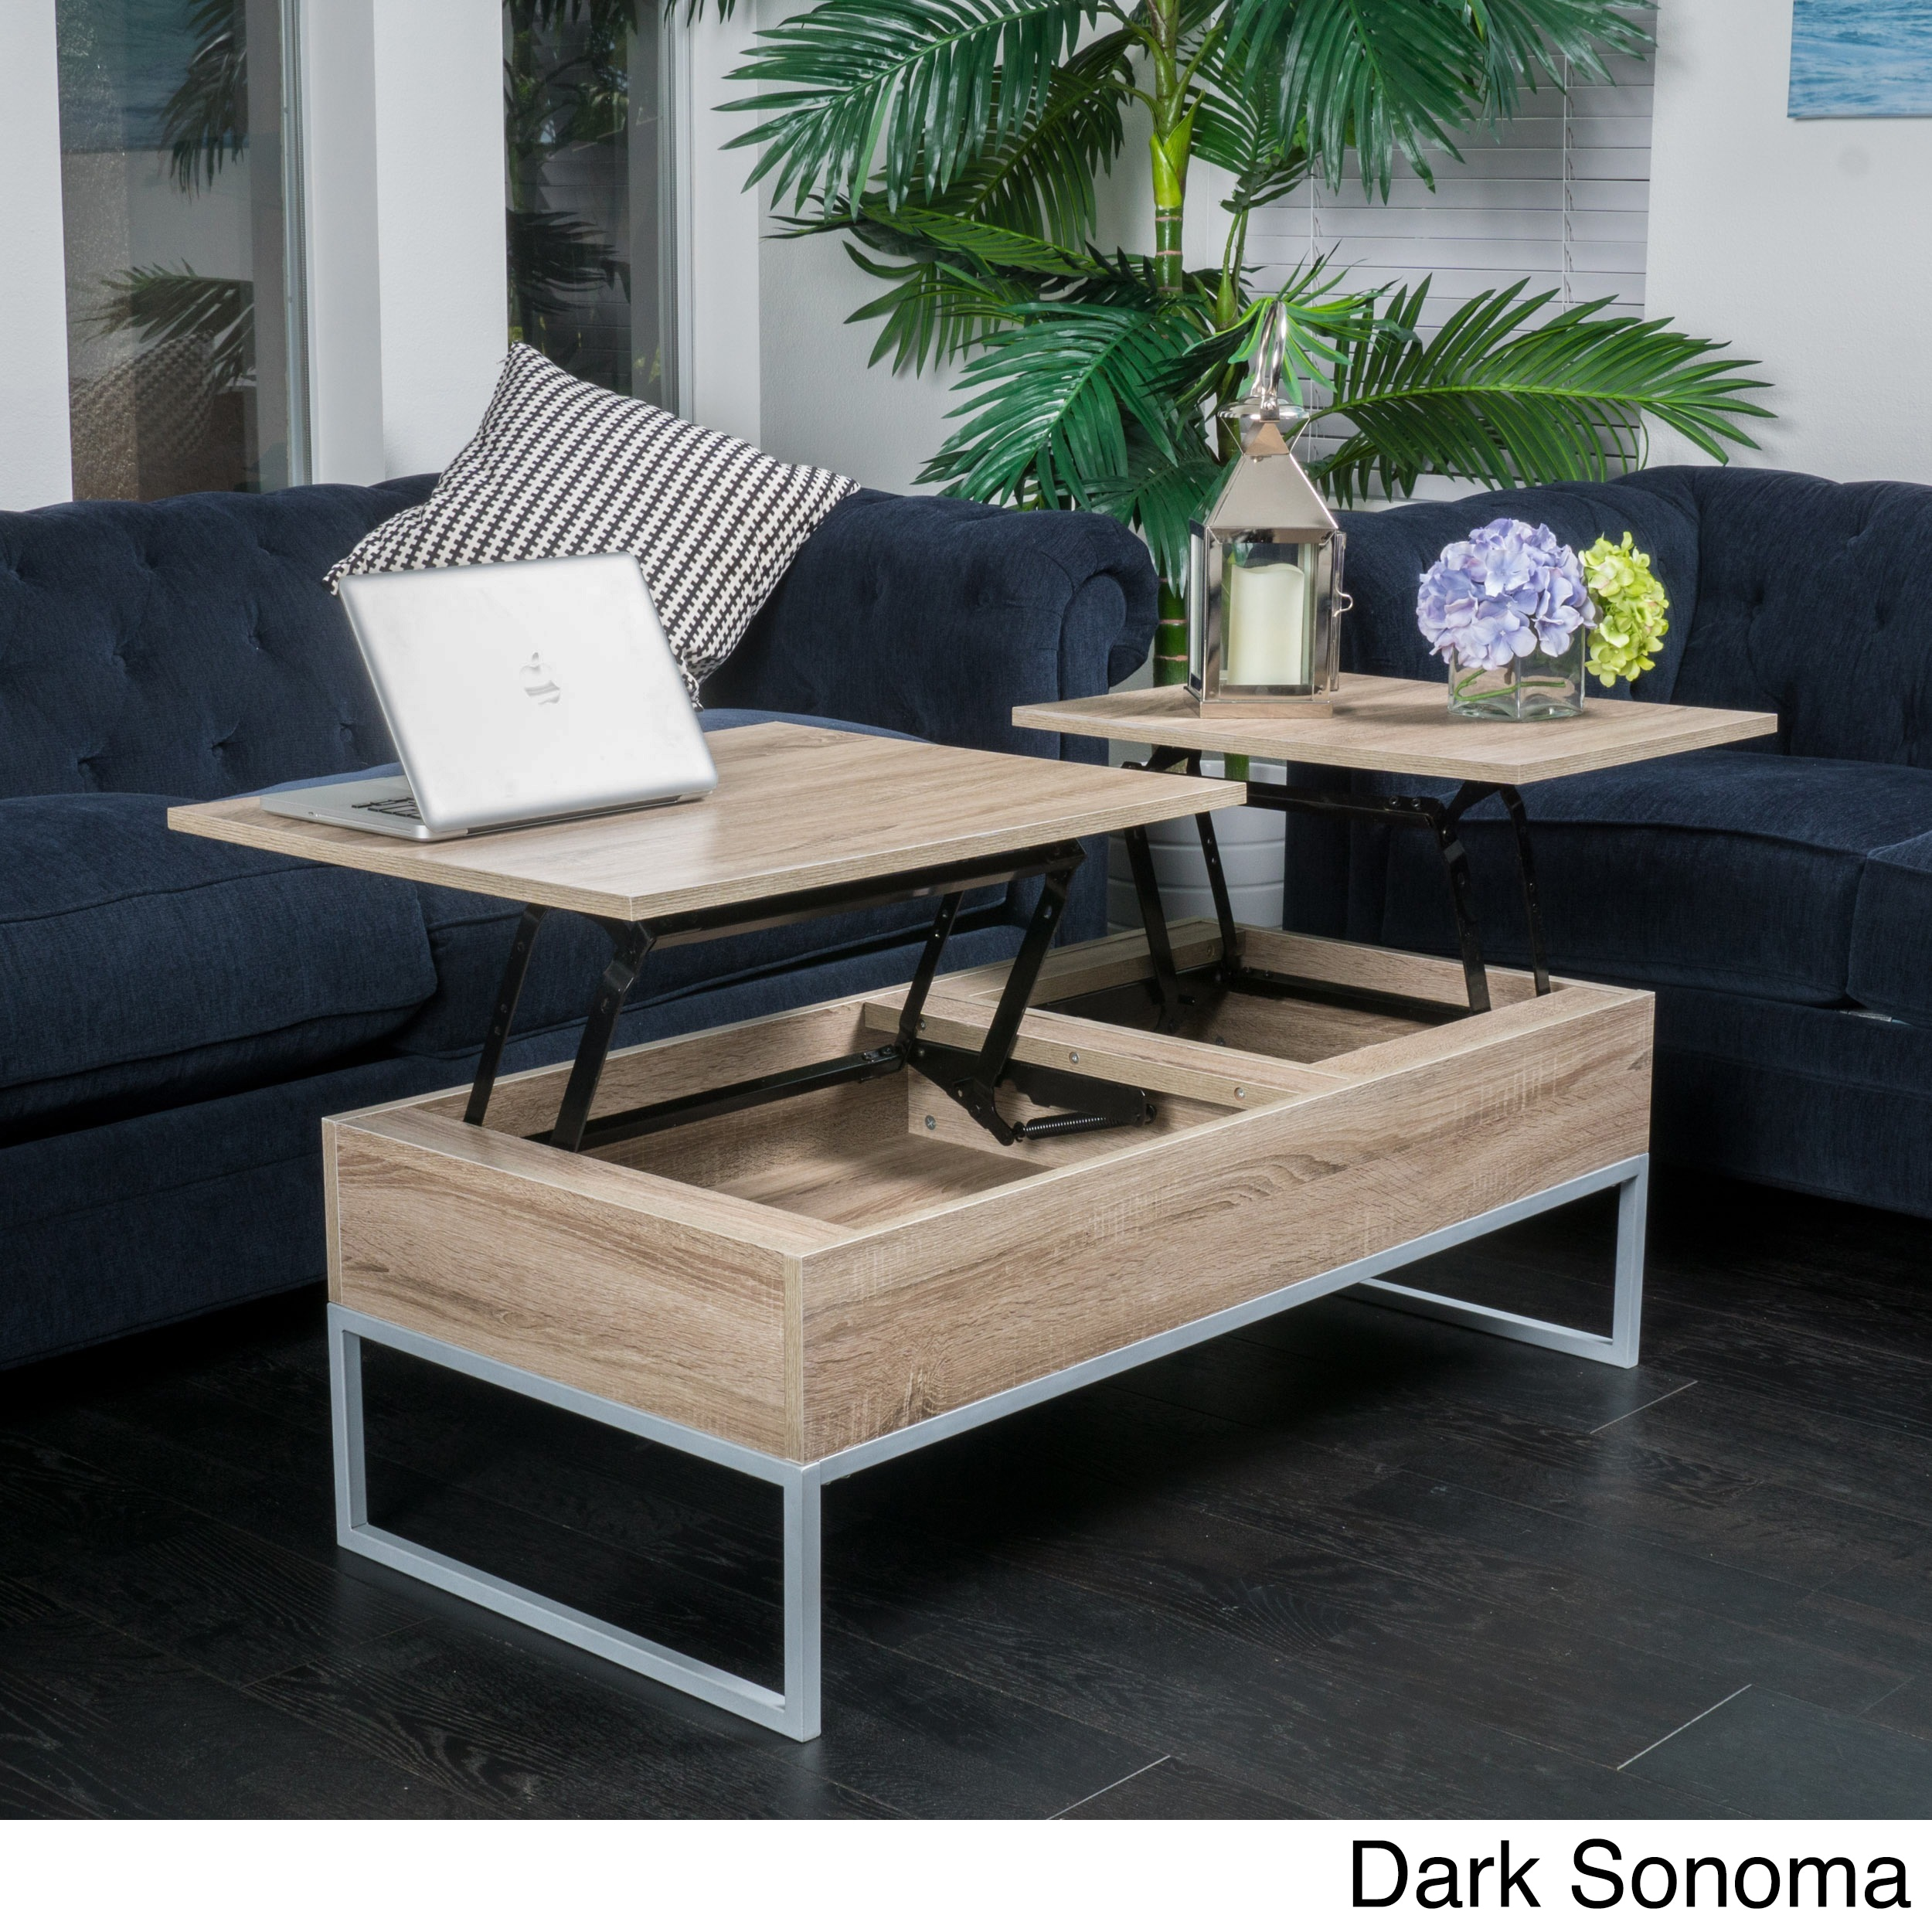 Coffee table lift top dark sonoma christopher knight home ebay picture 6 of 10 geotapseo Images